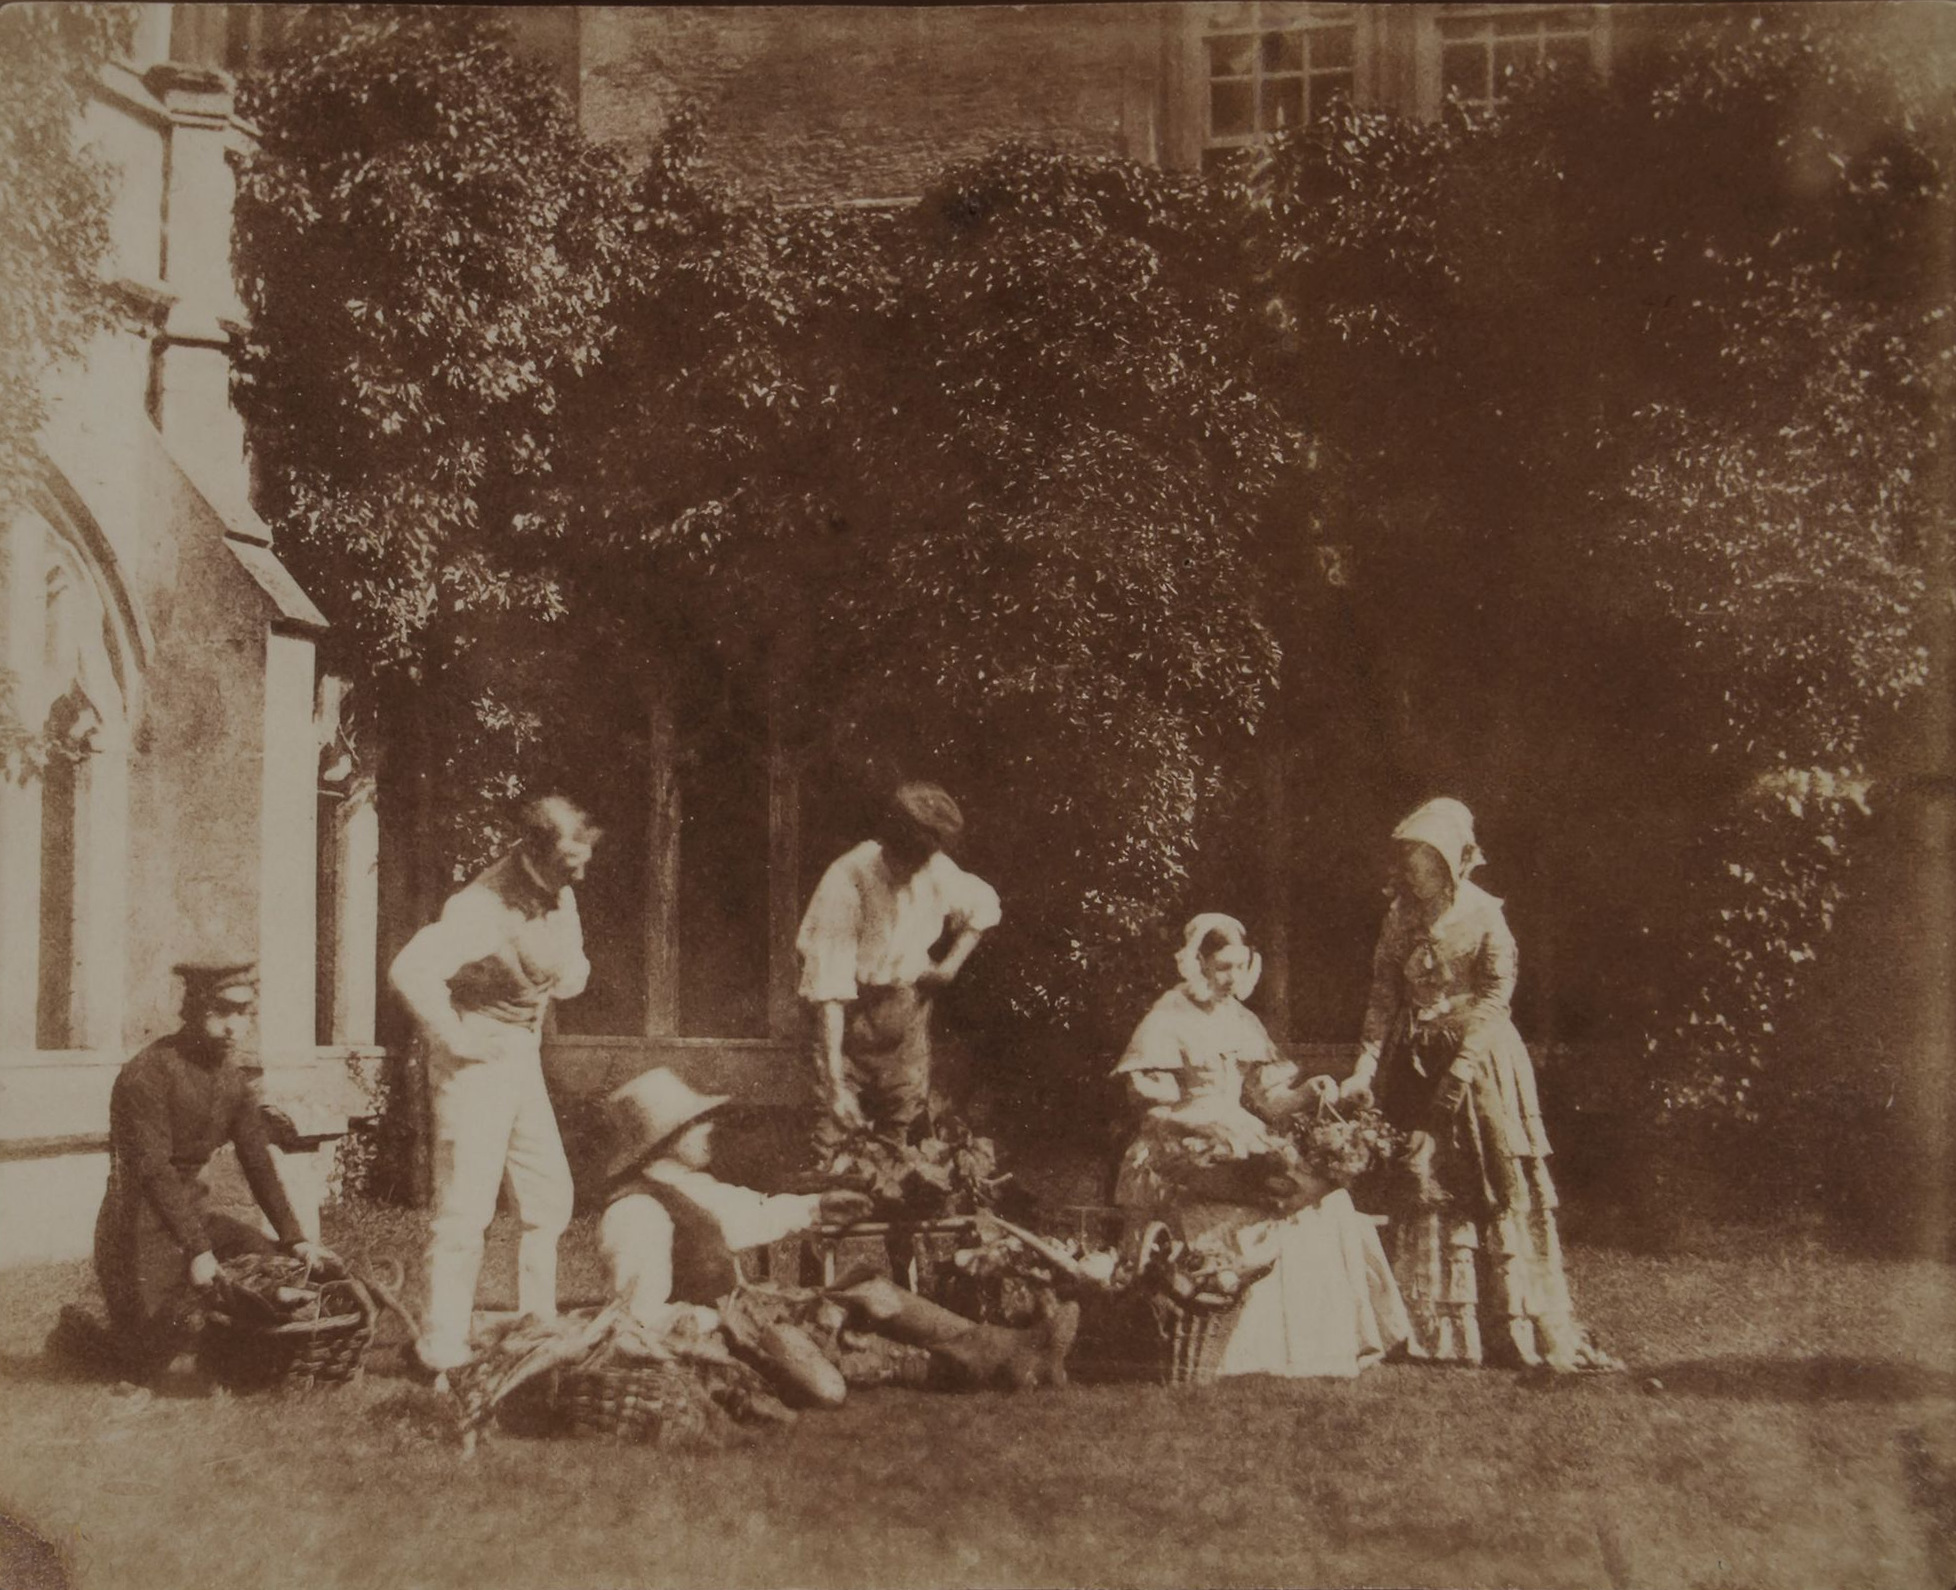 The Fruit Sellers, c. 1845 by William Henry Fox Talbot